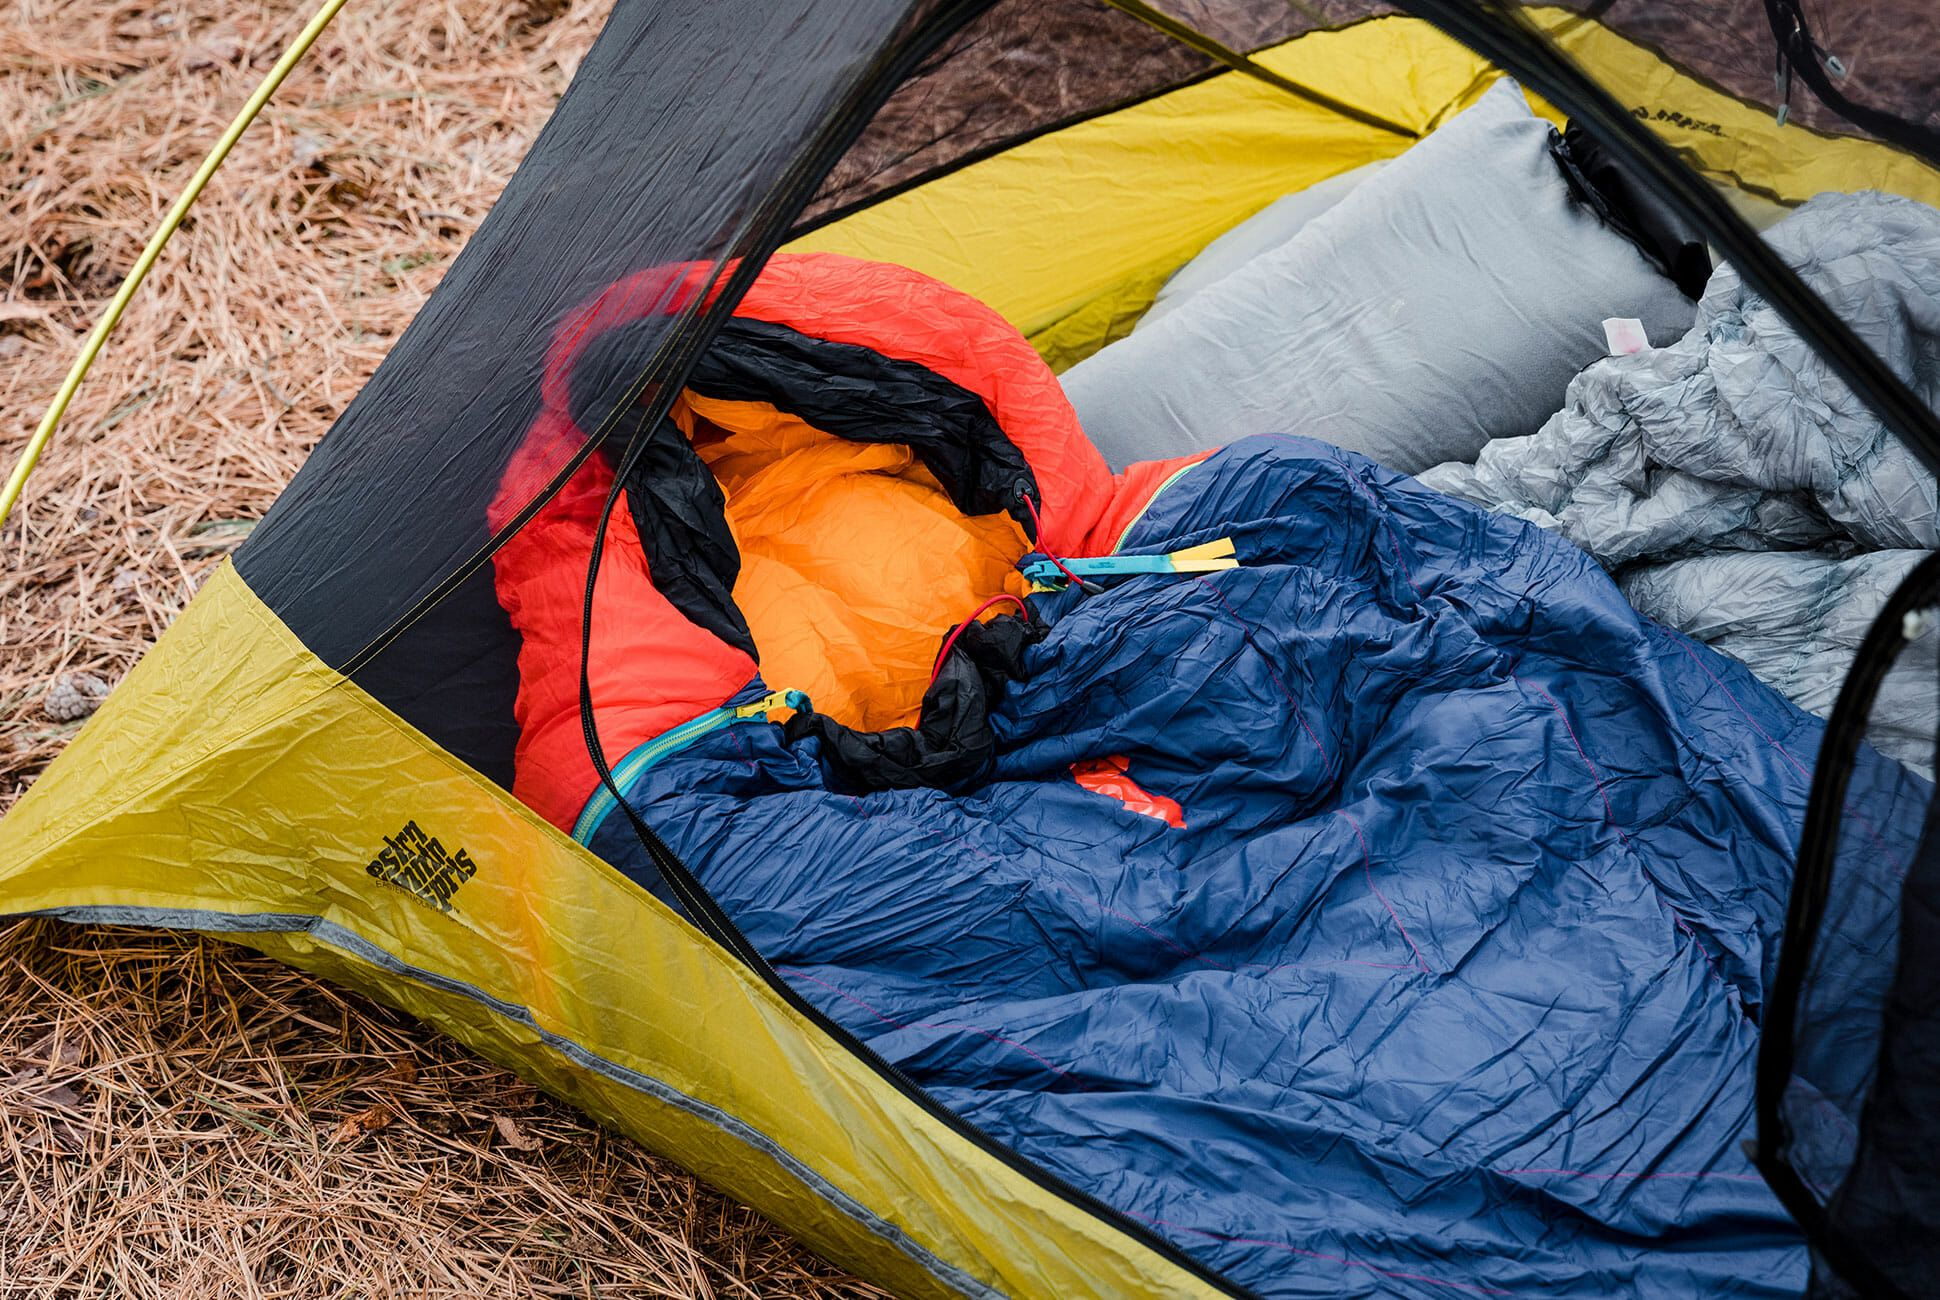 eight-camping-updates-gear-patrol-2-tent